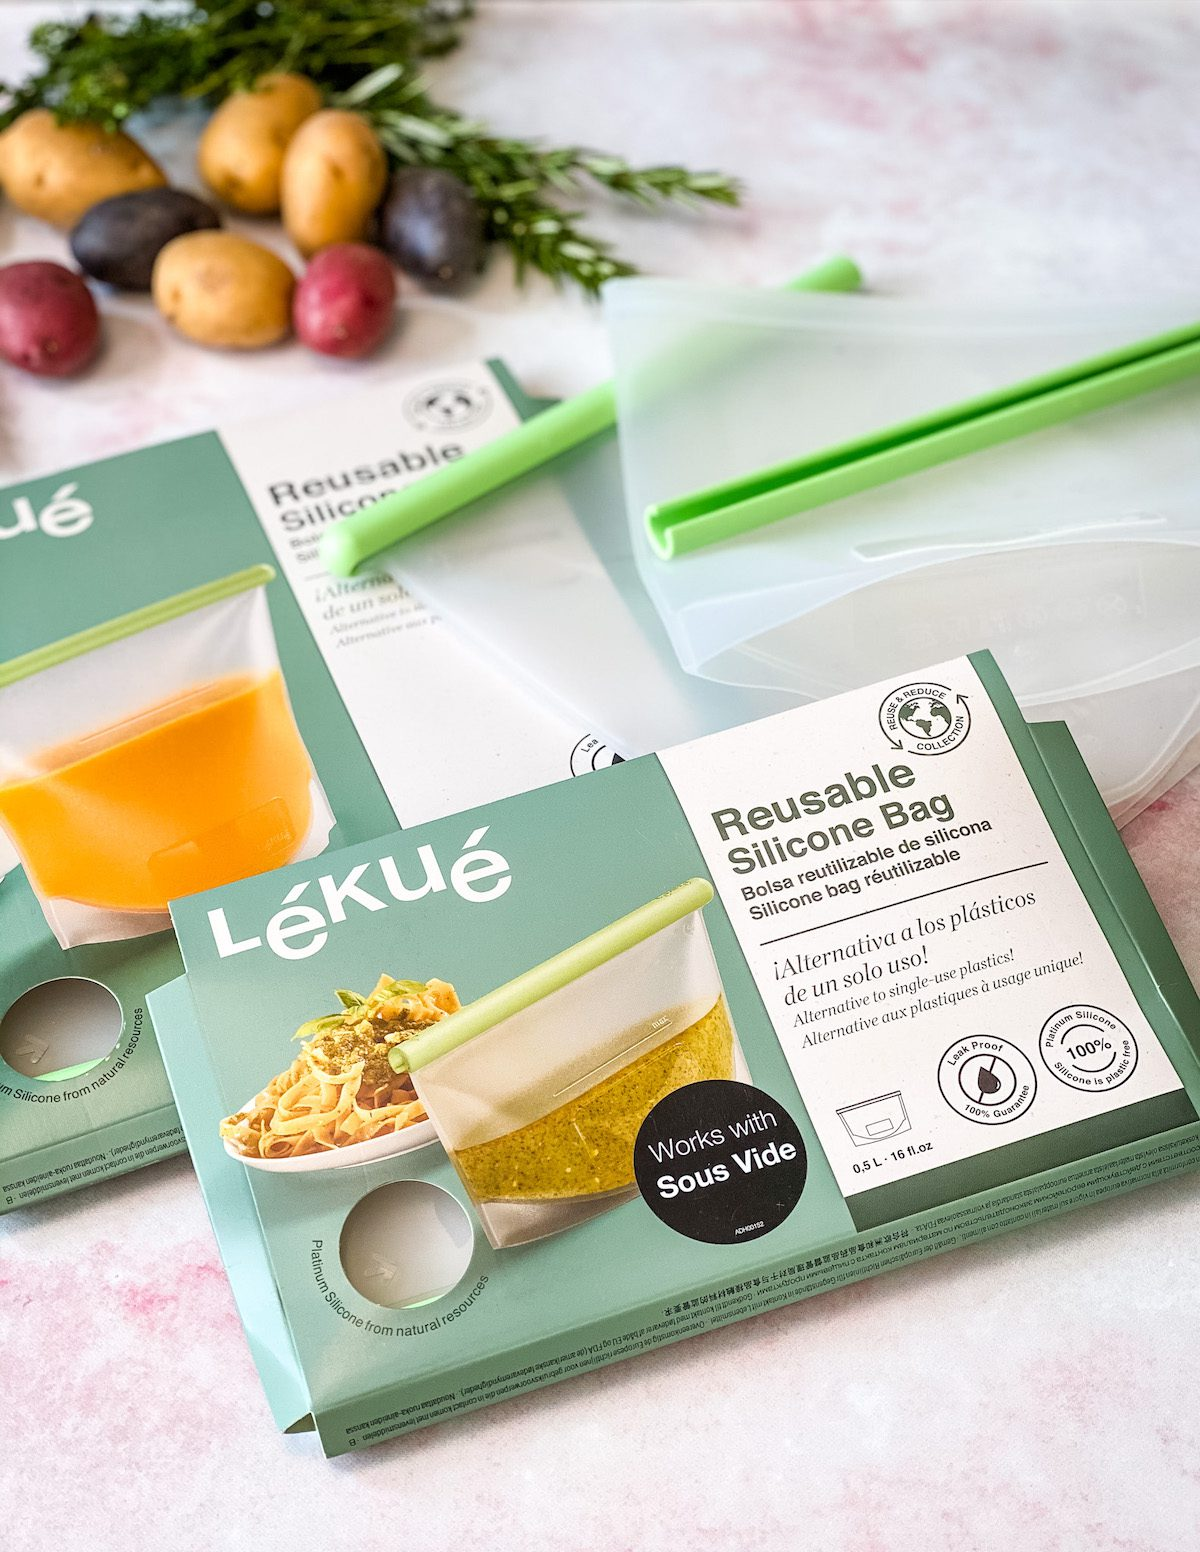 Lekue silicone bags in product packaging